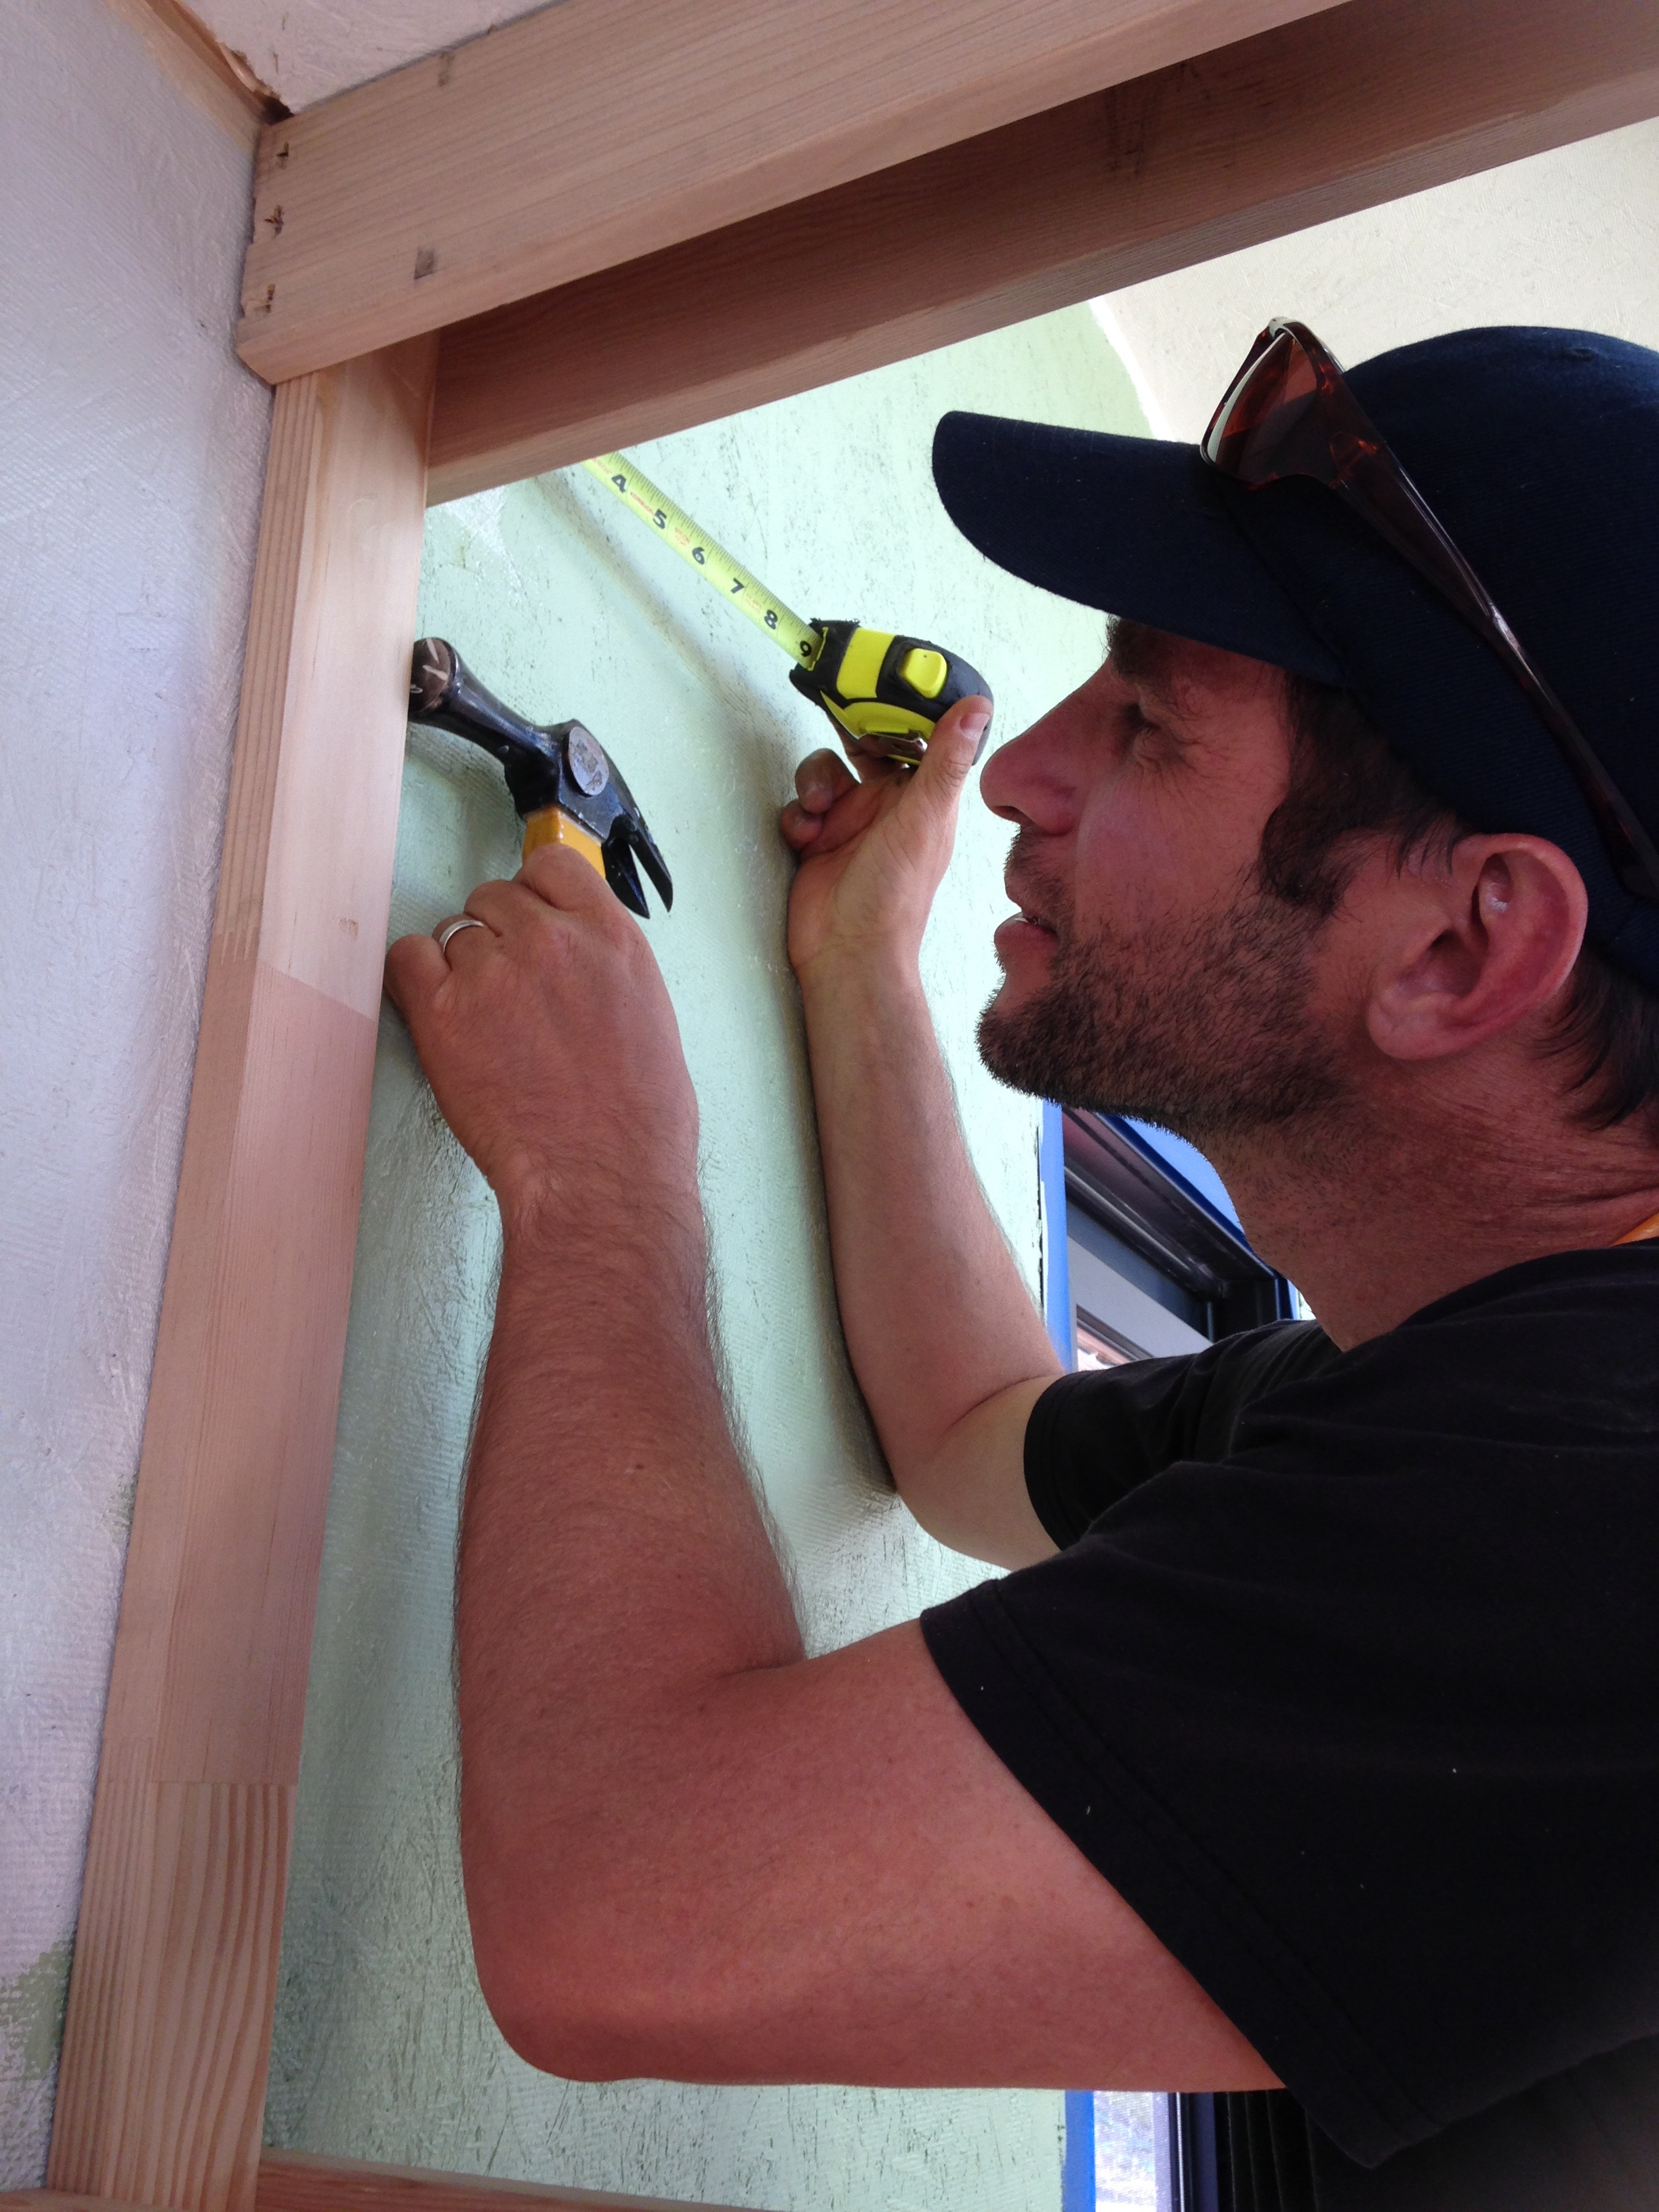 Isha installing the pocket door (doesn't that ring look great on him!?)